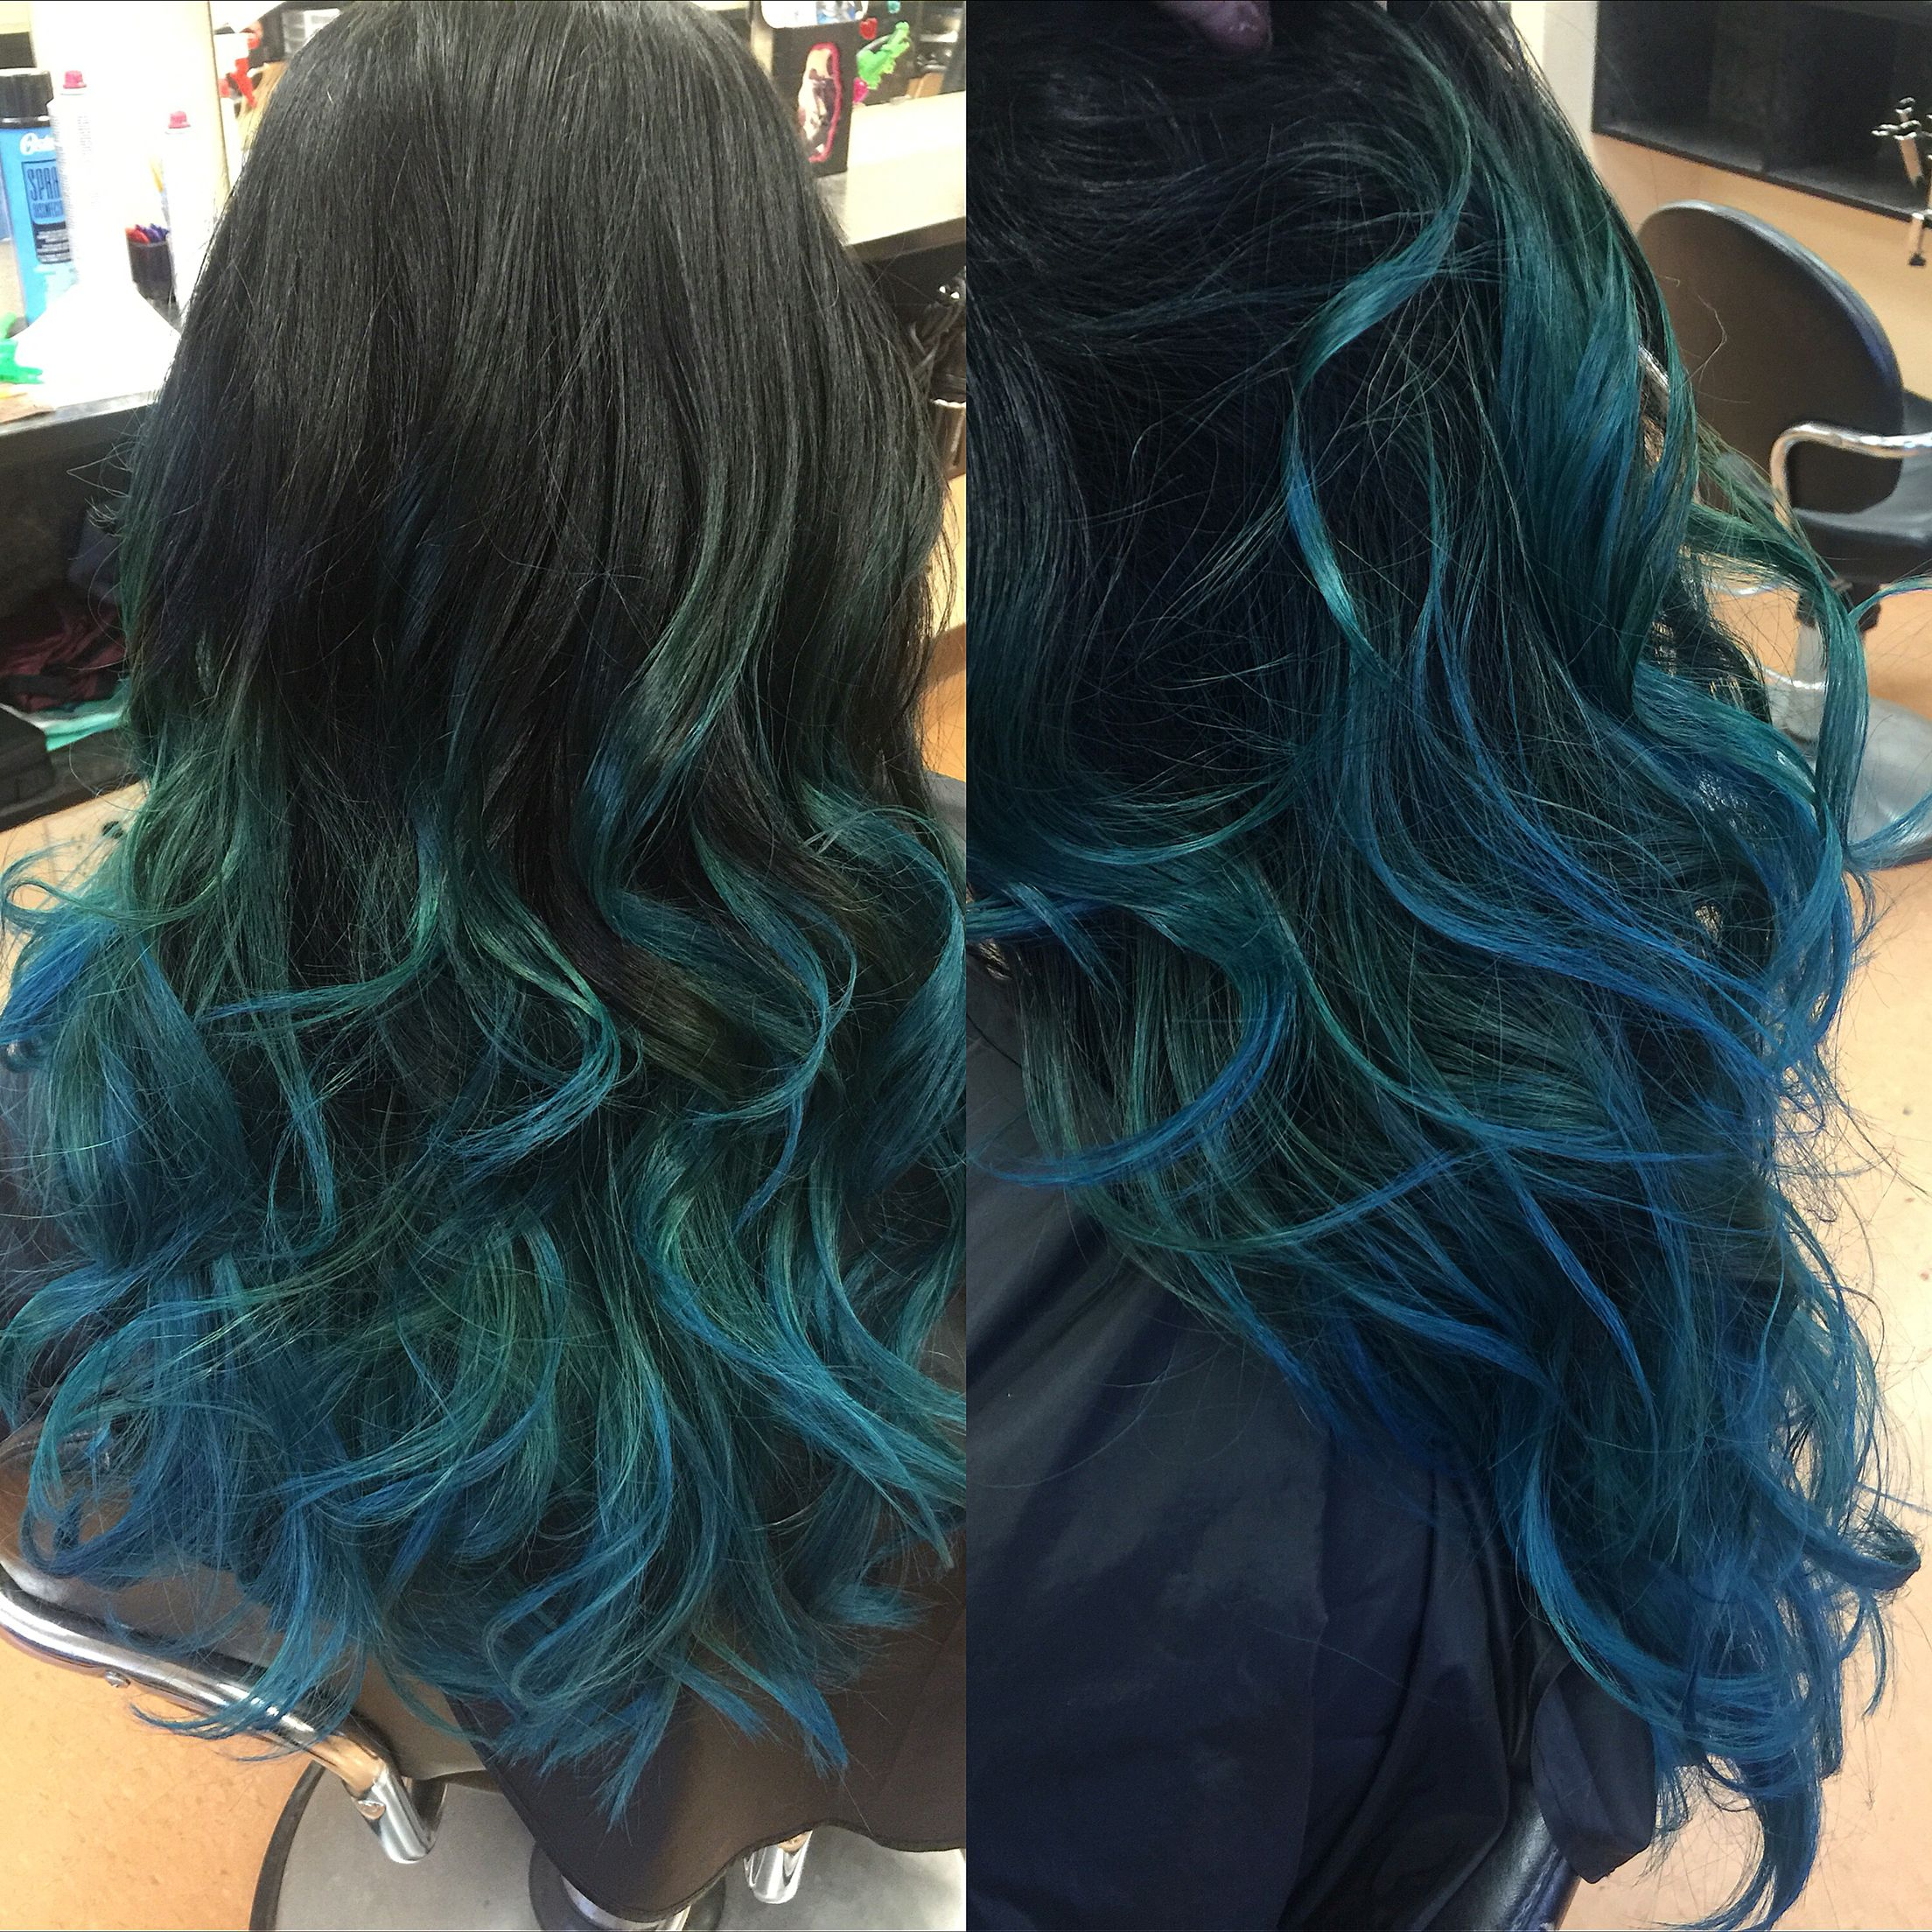 Gorgeous Peacock Green And Blue Color Matrix 1n And 2n Half And Half For Staggered New Growth Matrix Light Maste Hair Color Formulas Blue Hair Peacock Green